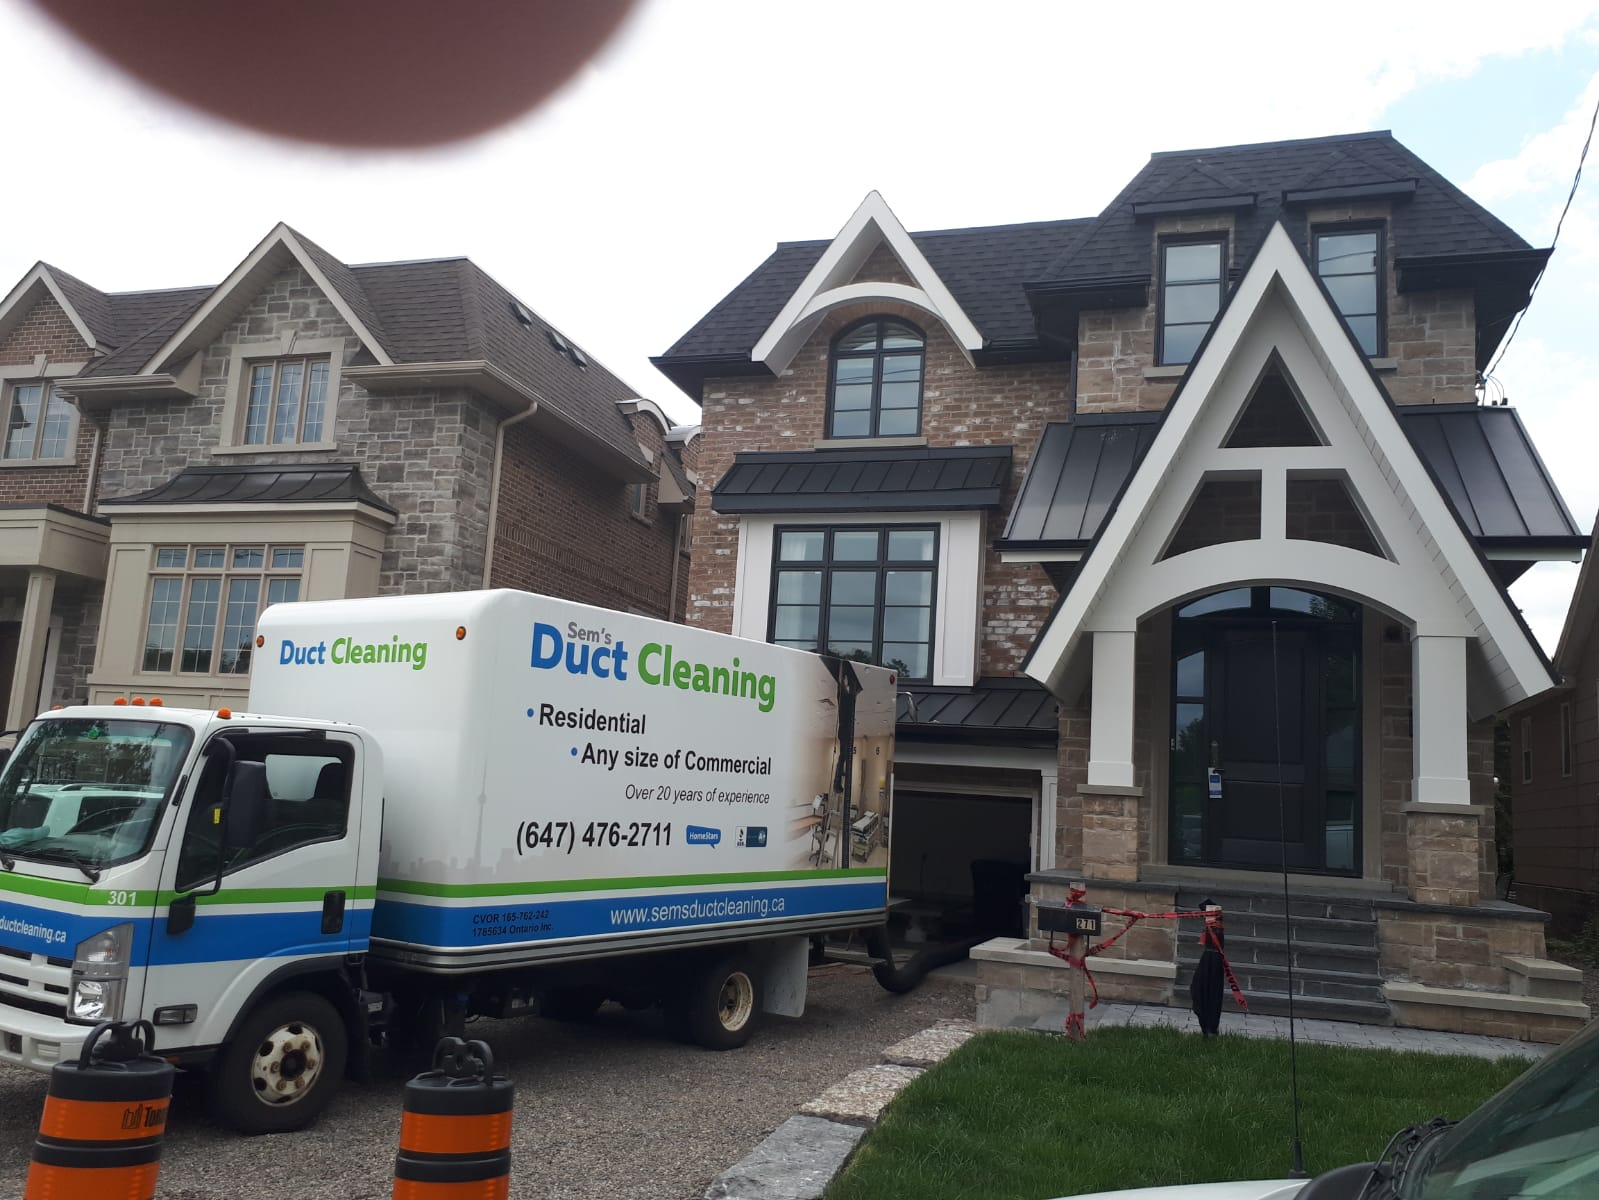 Duct Cleaning during Summer & Winter